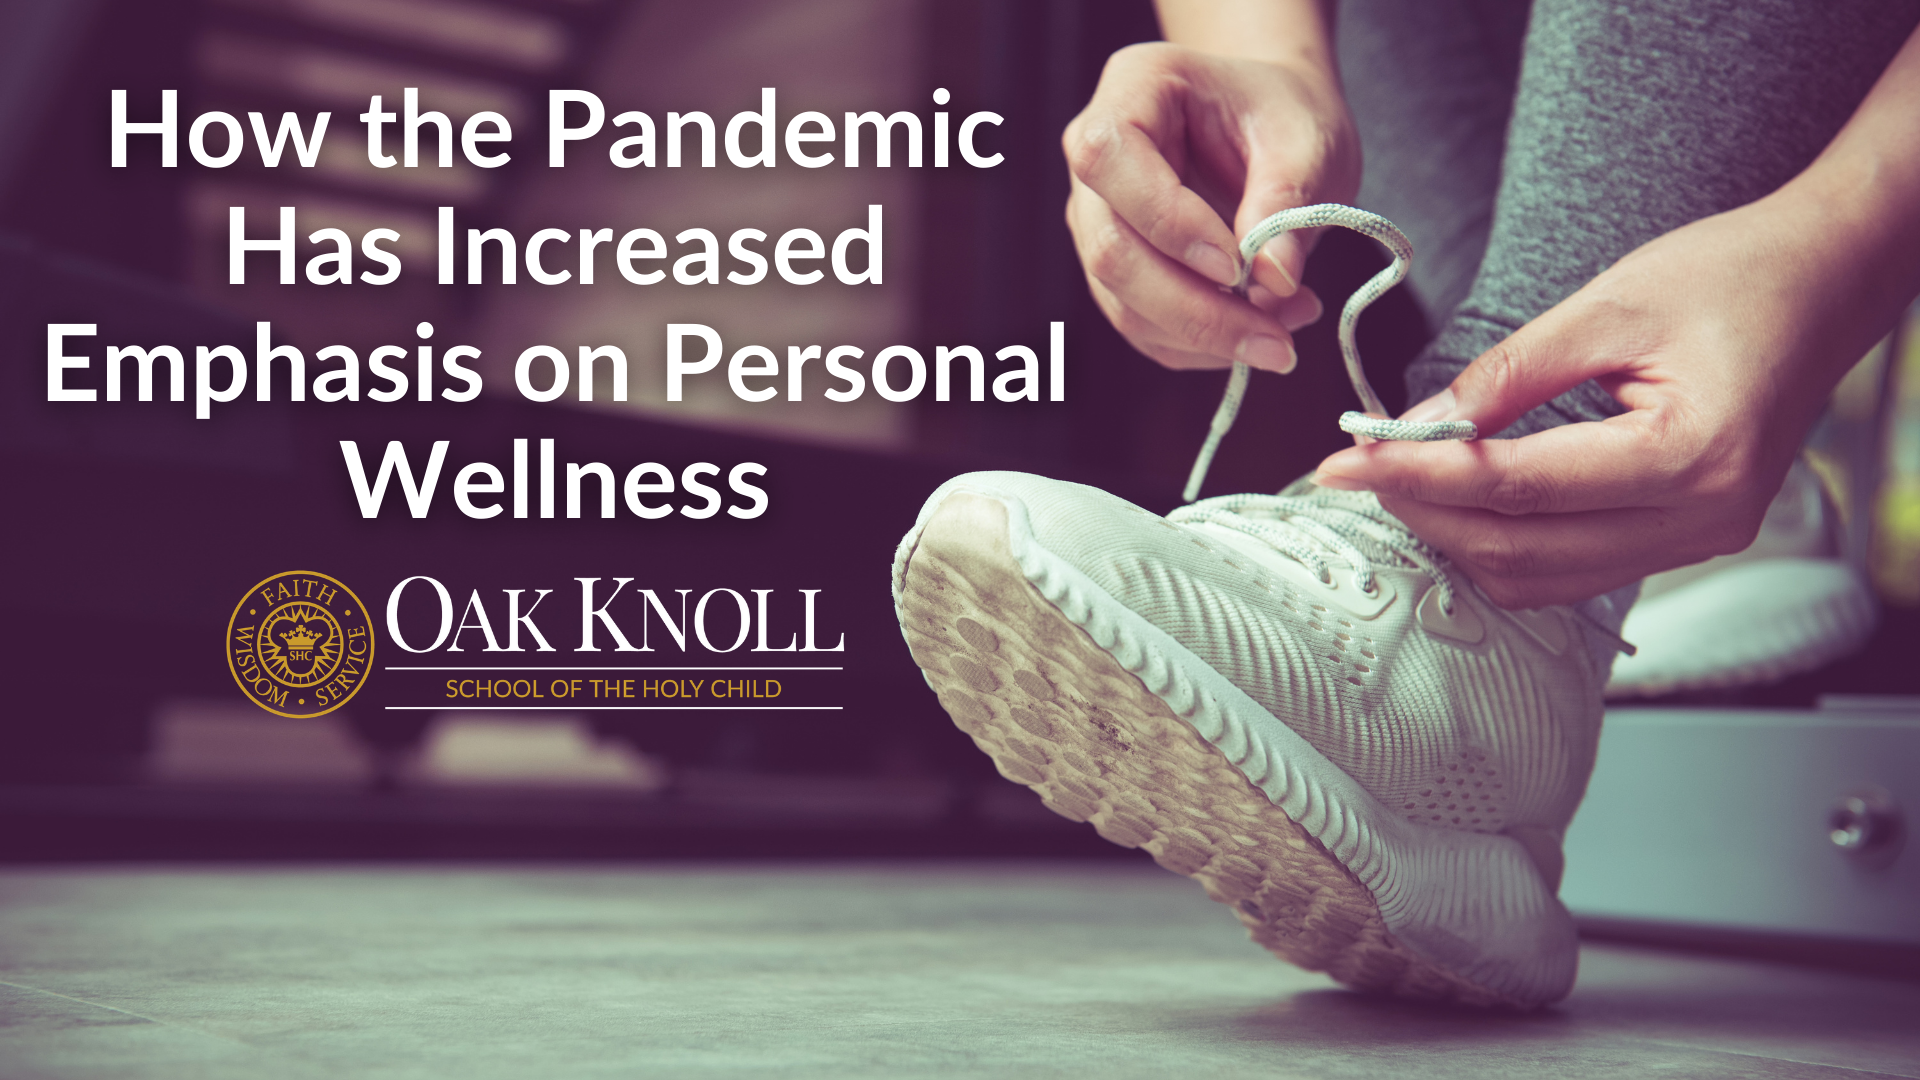 How the Pandemic Has Increased Emphasis on Personal Wellness